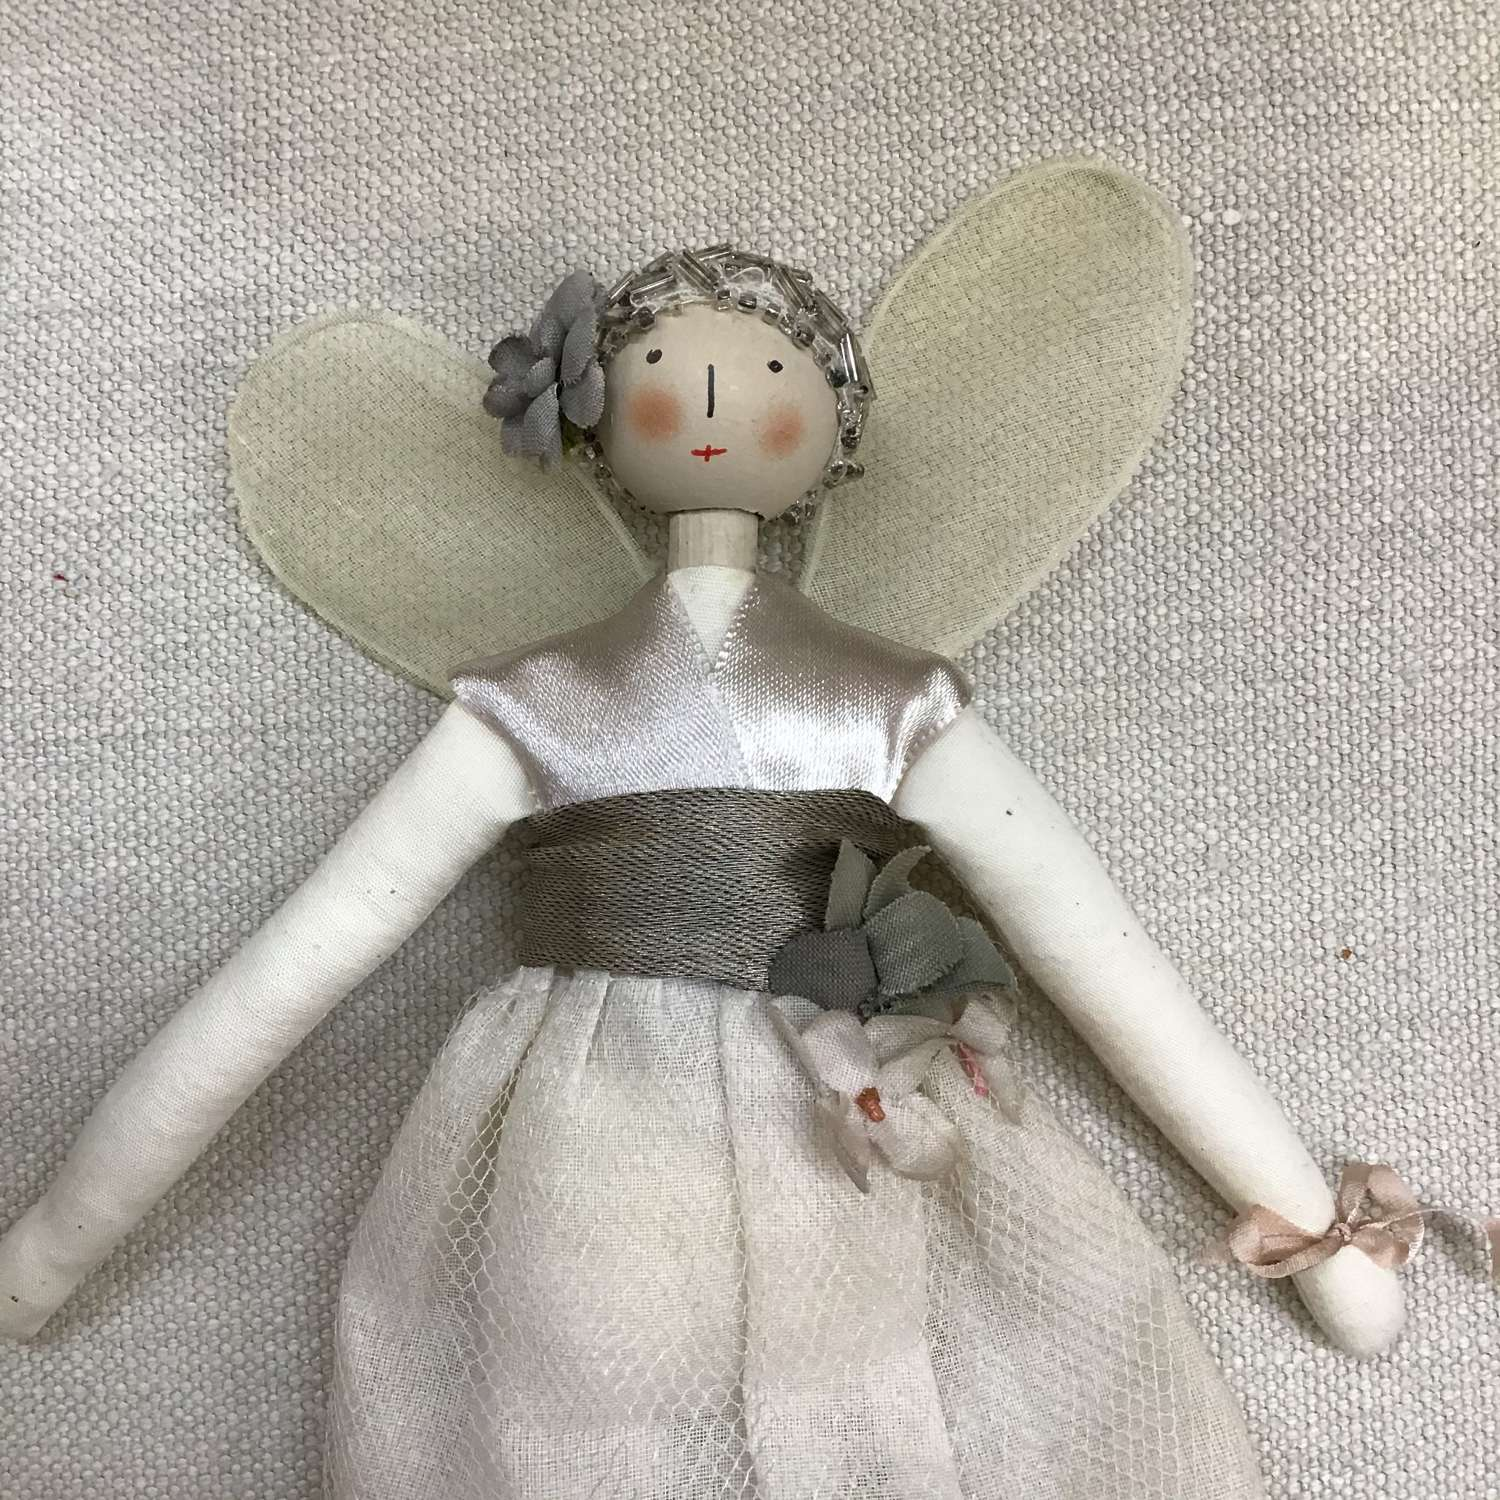 Hand crafted cloth fairy doll with vintage fabrics and trims